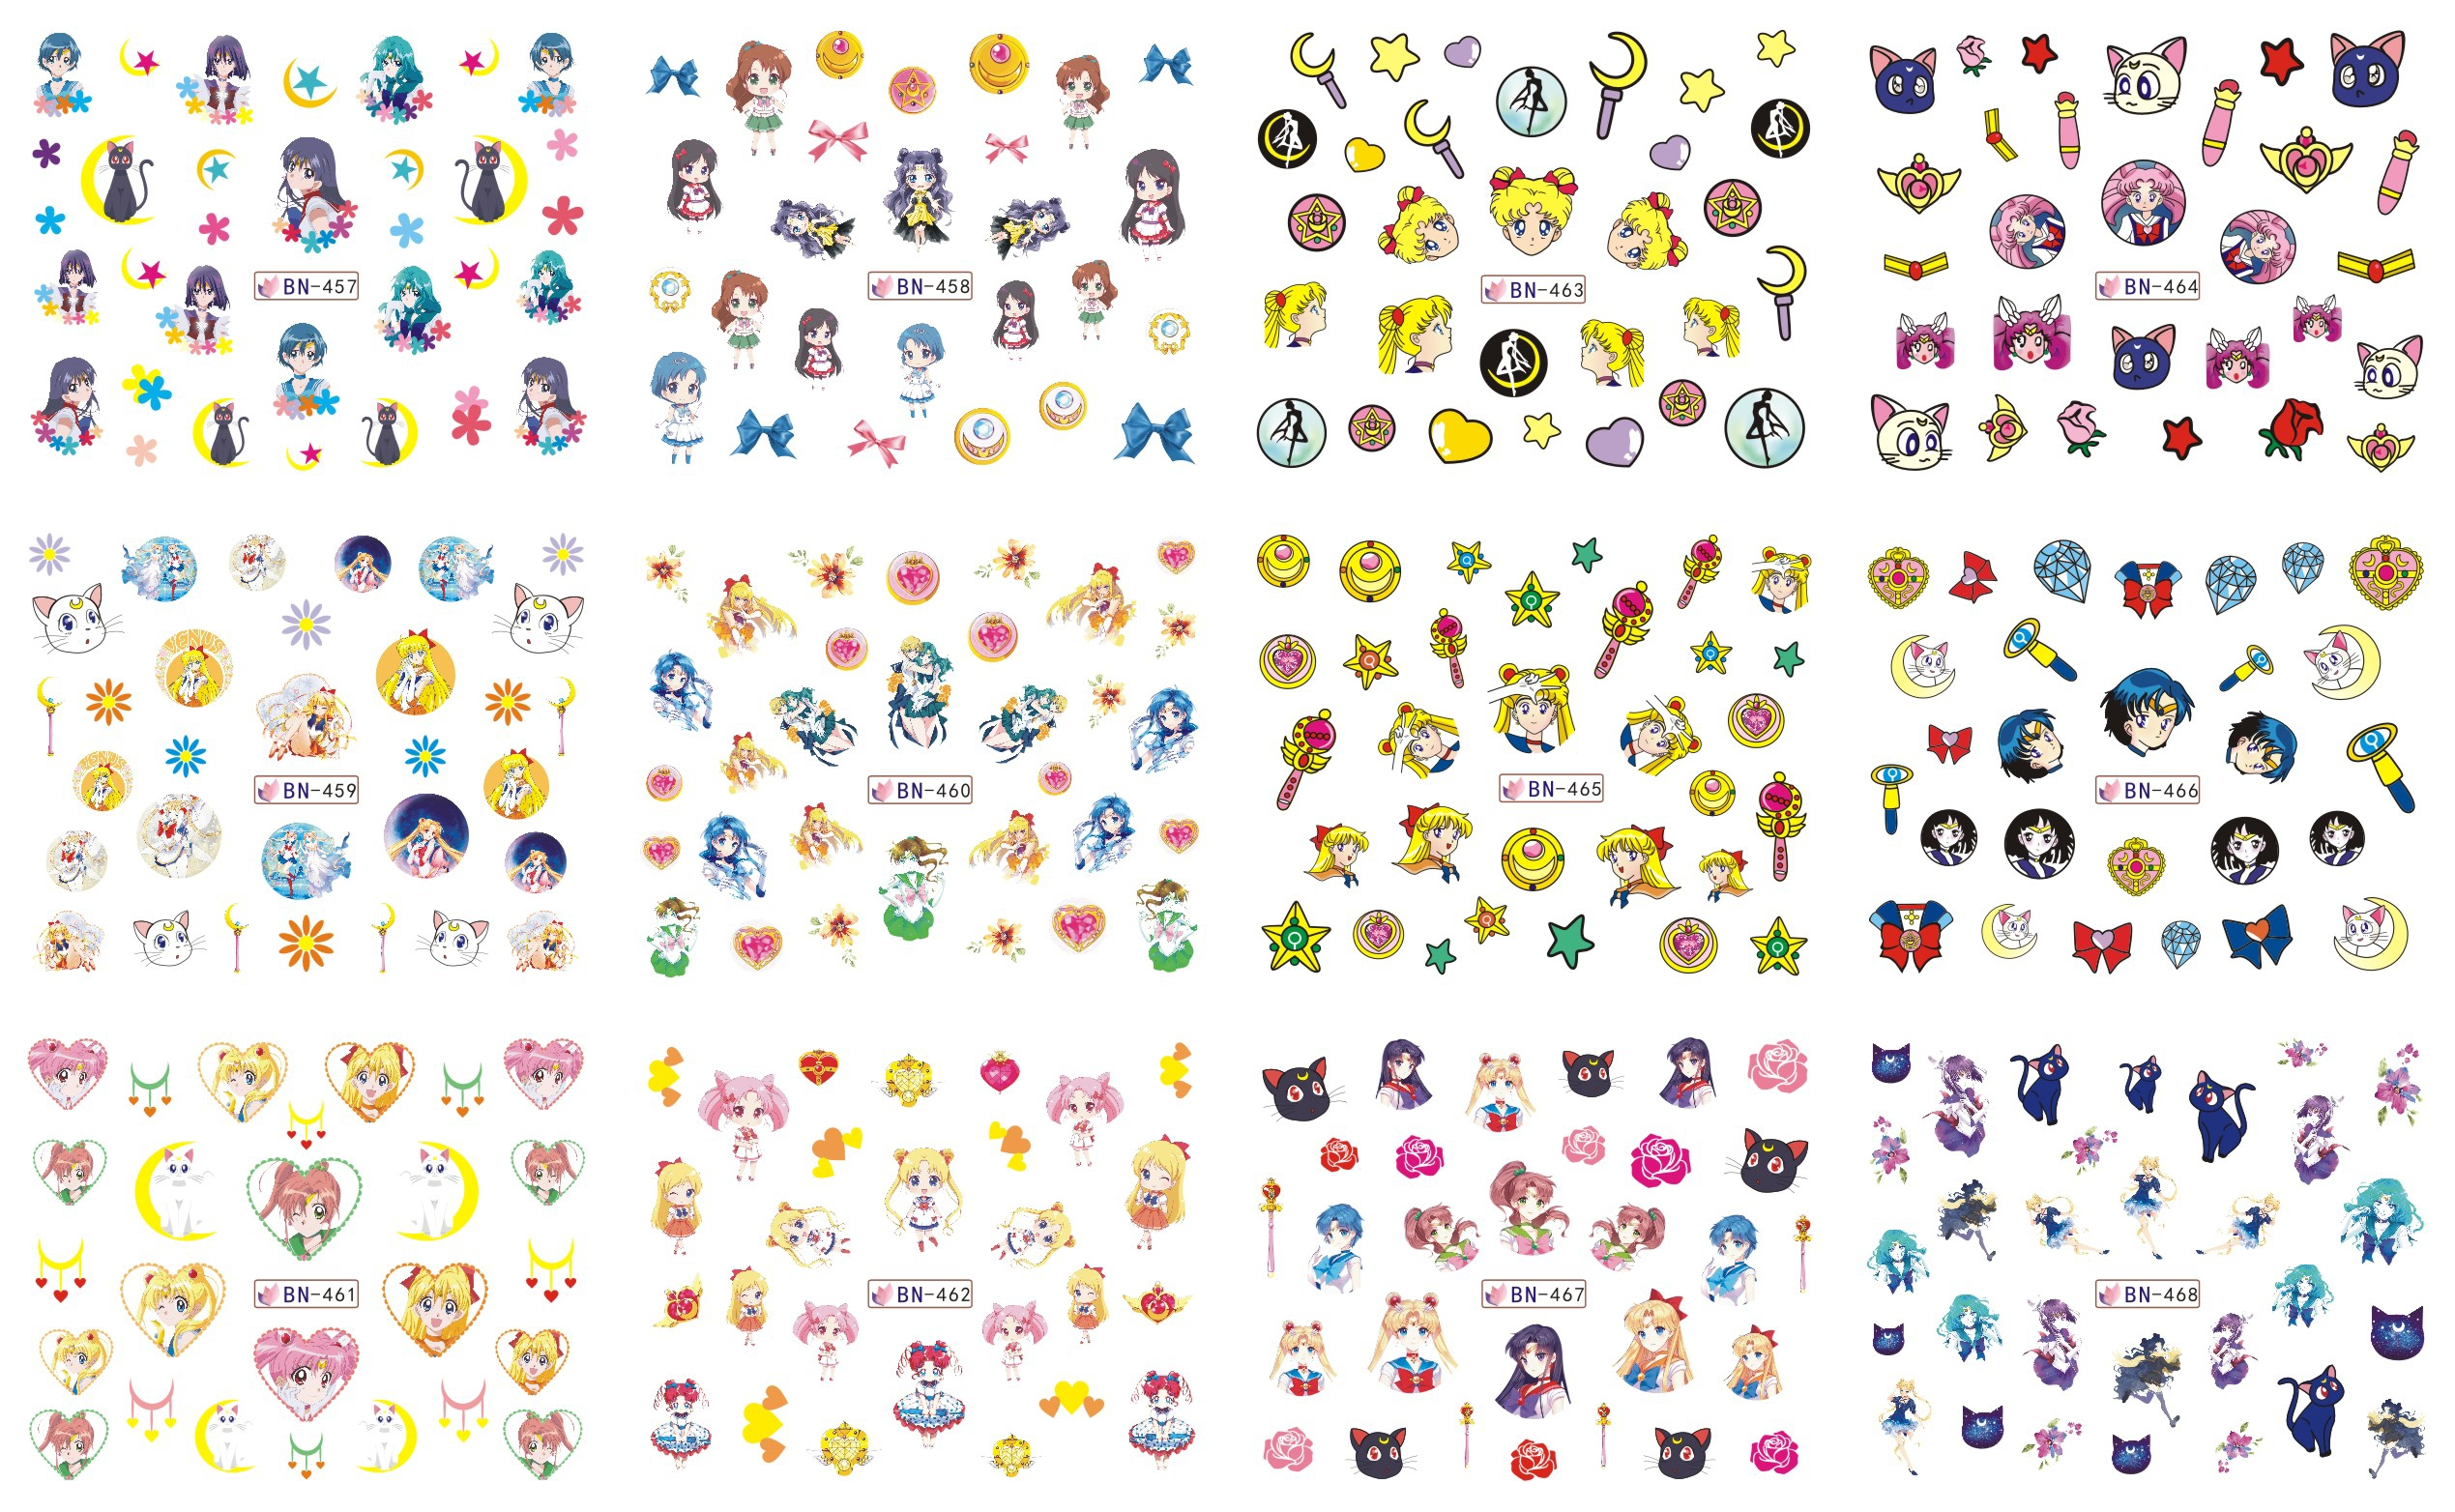 12 Sheets/Lot Nail BN457-468 Cartoon Sailor Moon Nail Art Water Sticker Decal For Nail Water (12 DESIGNS IN 1) 3 packs lot cartoon marine mermaid conch sea star nail tattoos sticker water decal nail art hot307 309